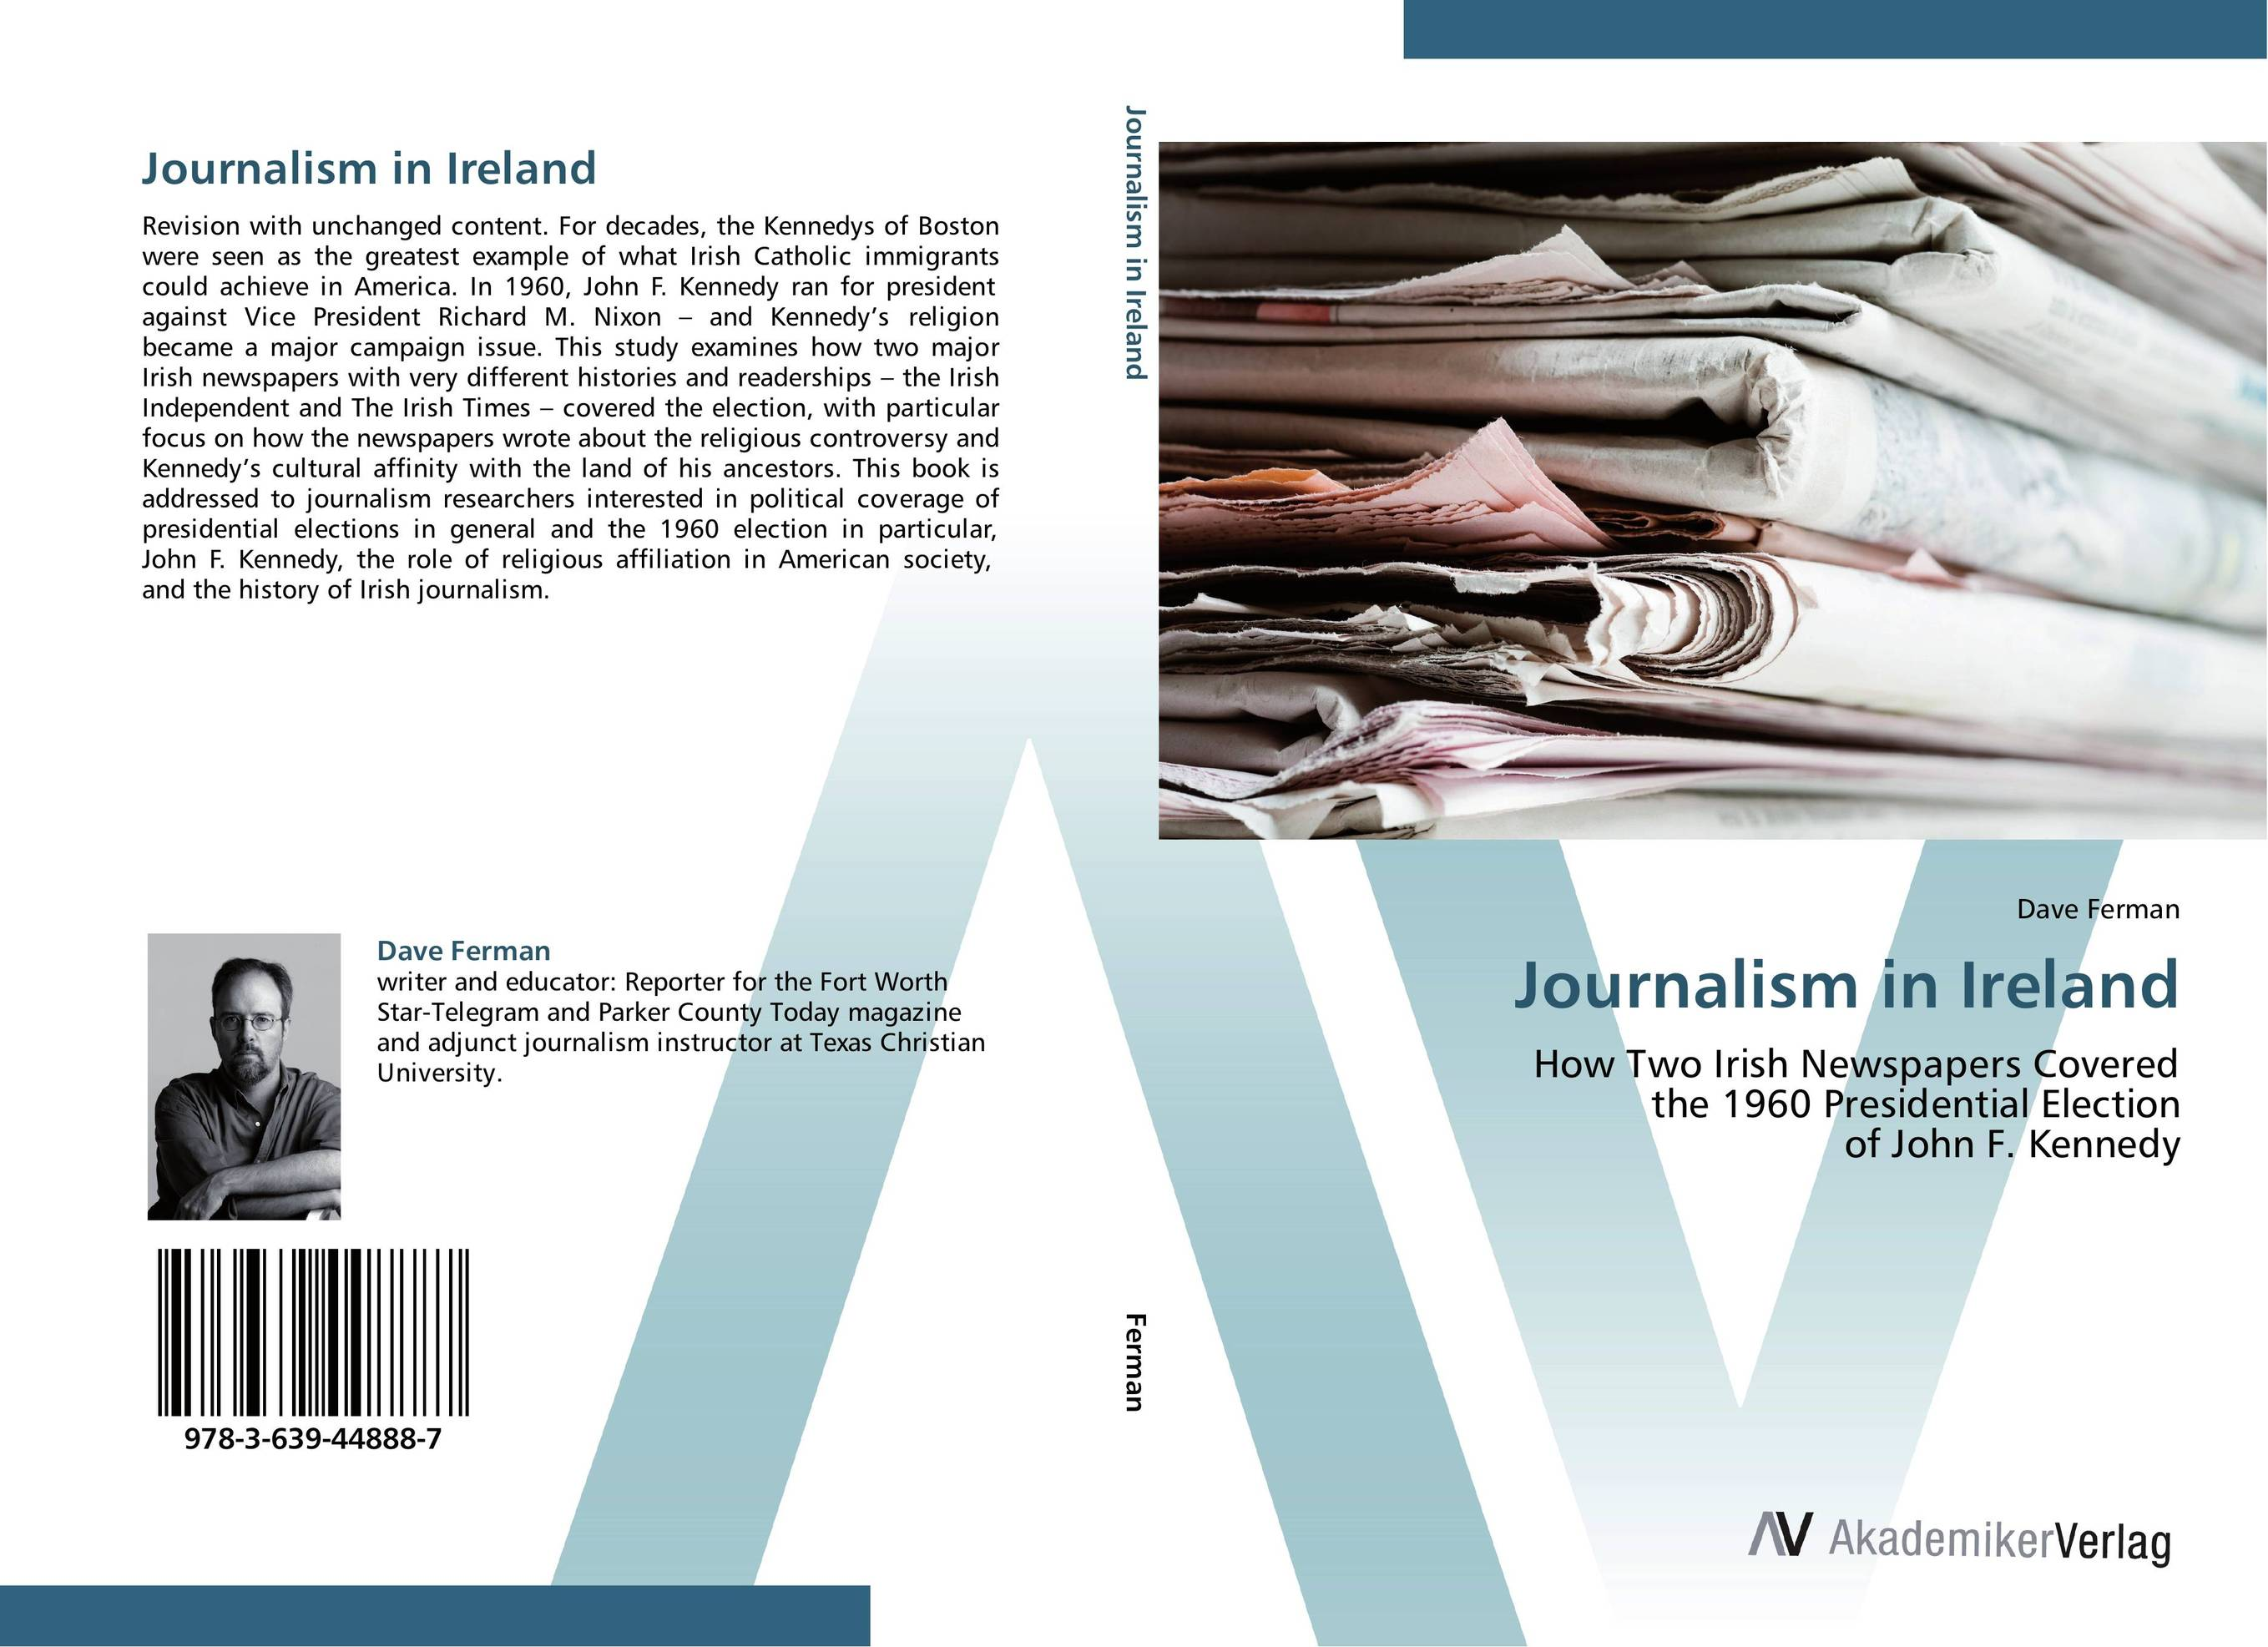 Journalism in Ireland hungering for america – italian irish